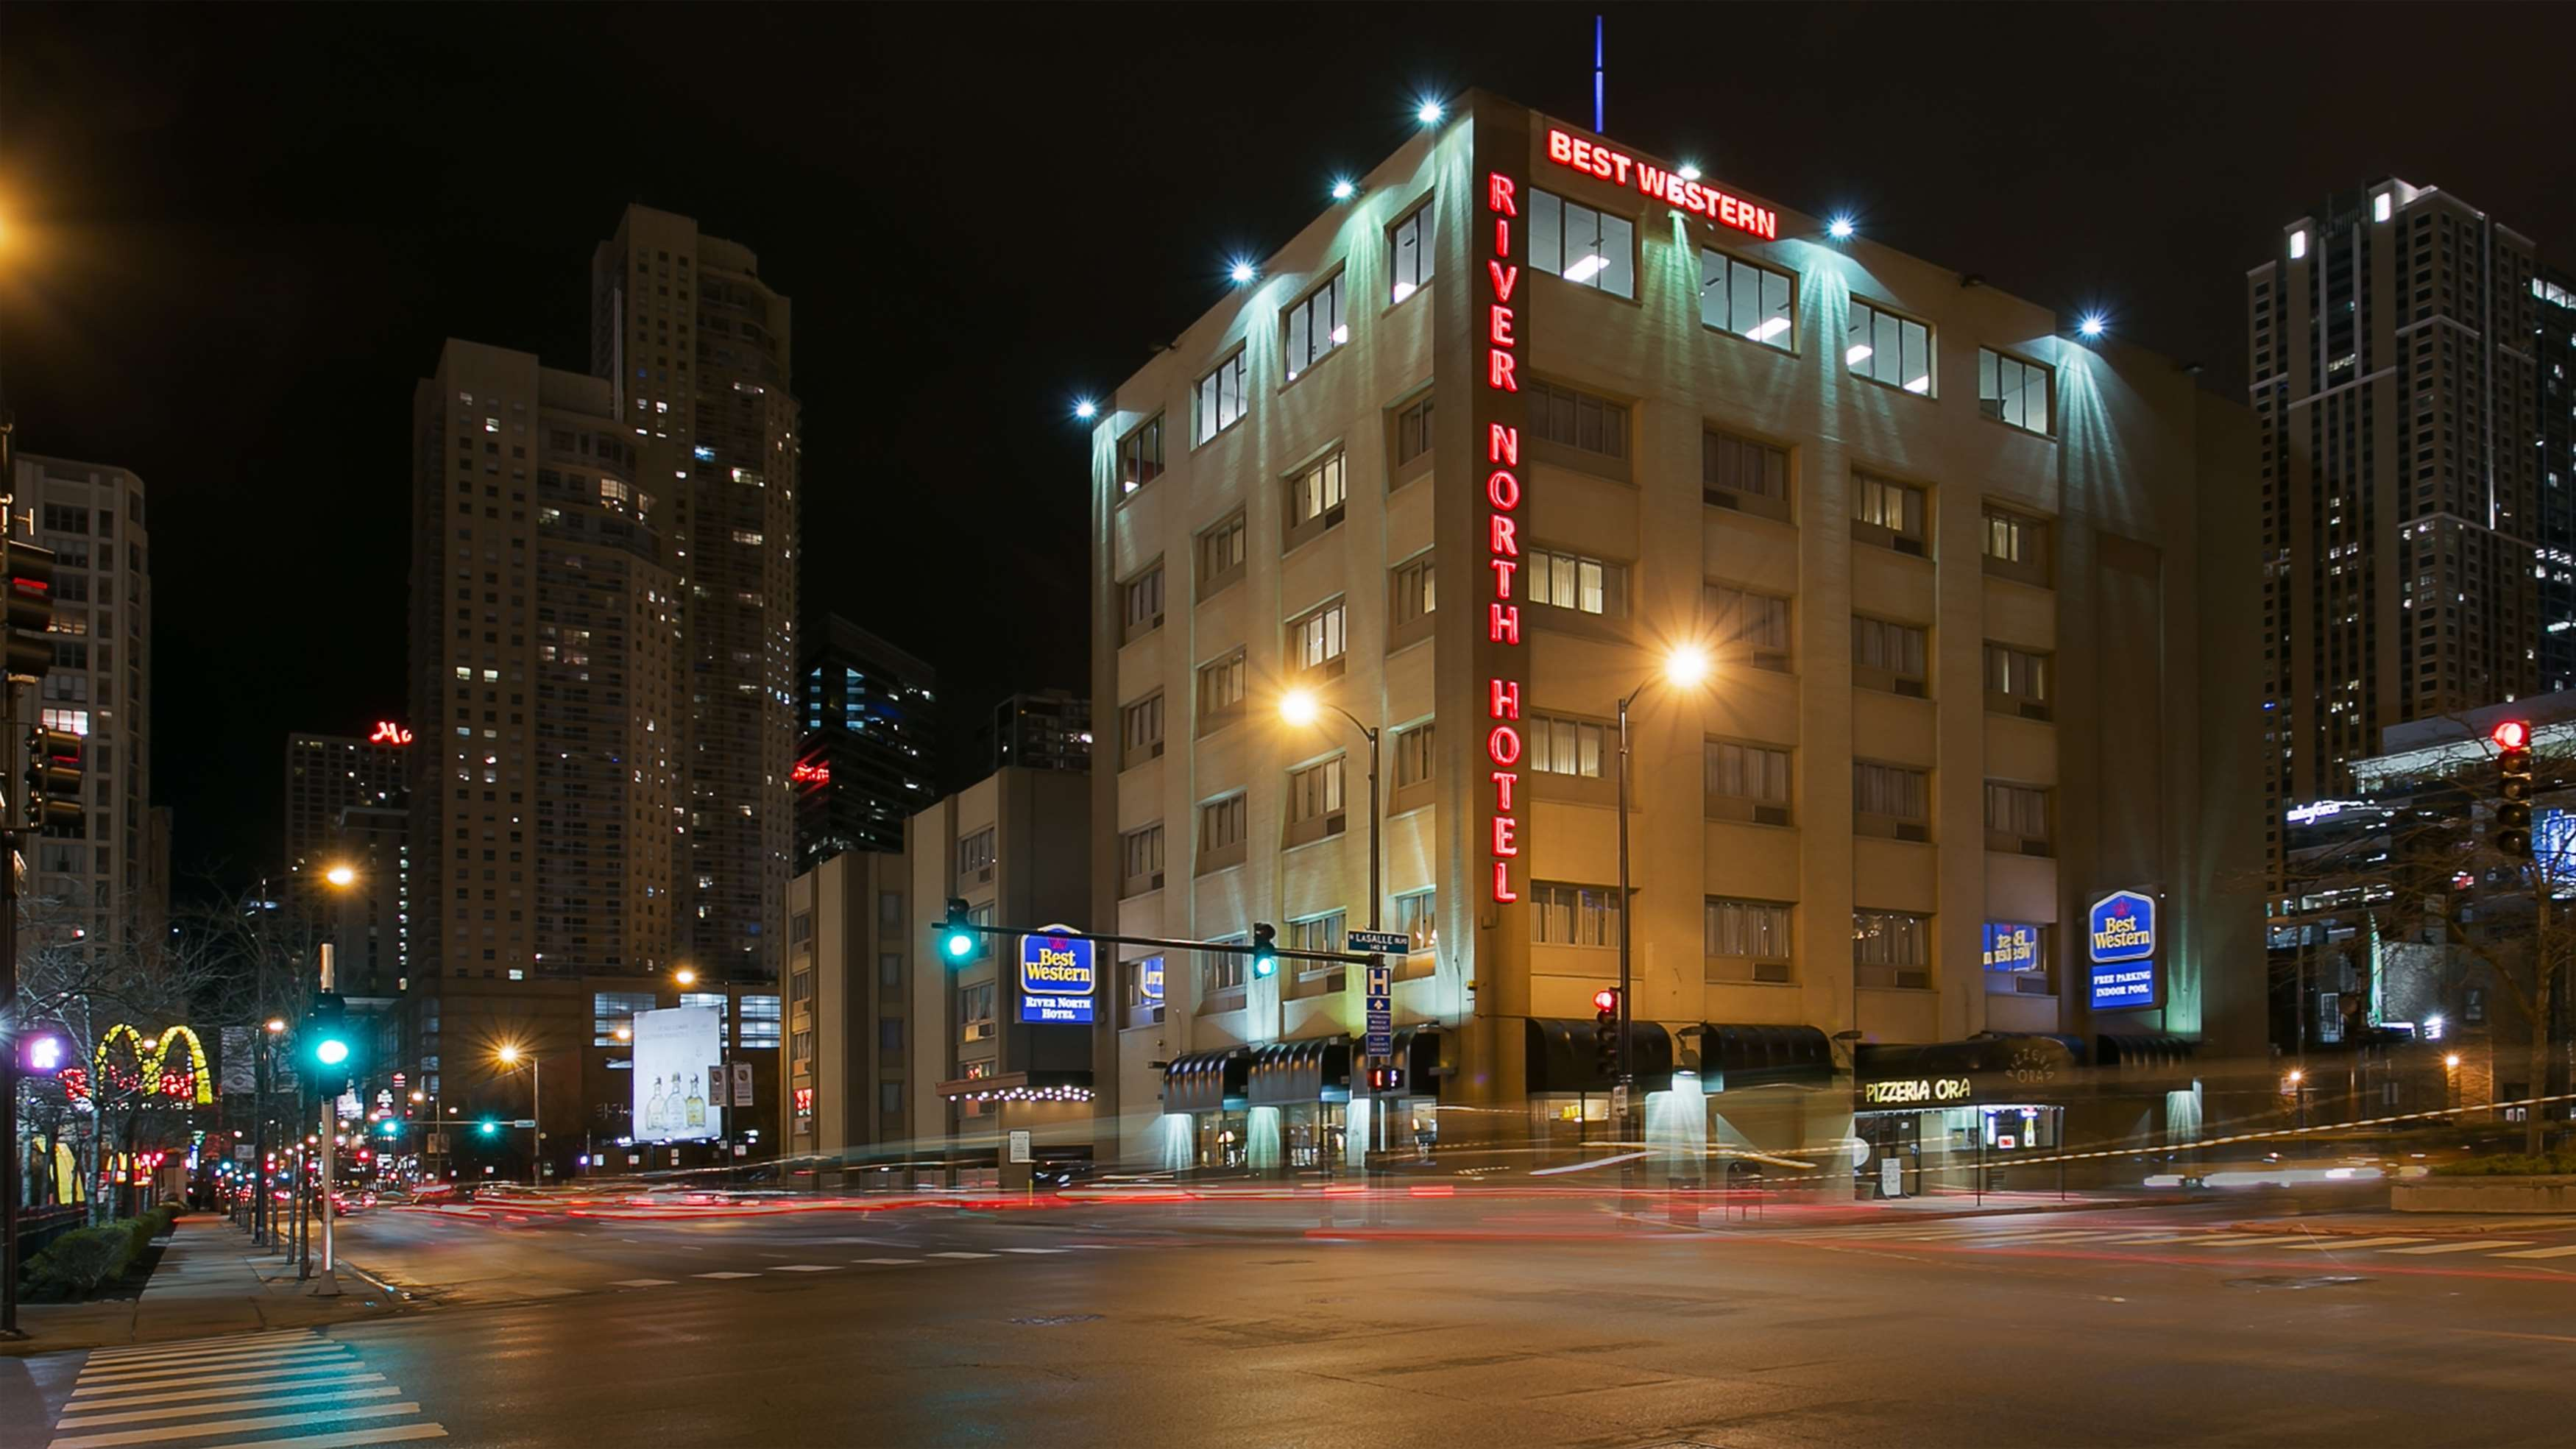 best western river north hotel in chicago il 312 467 0